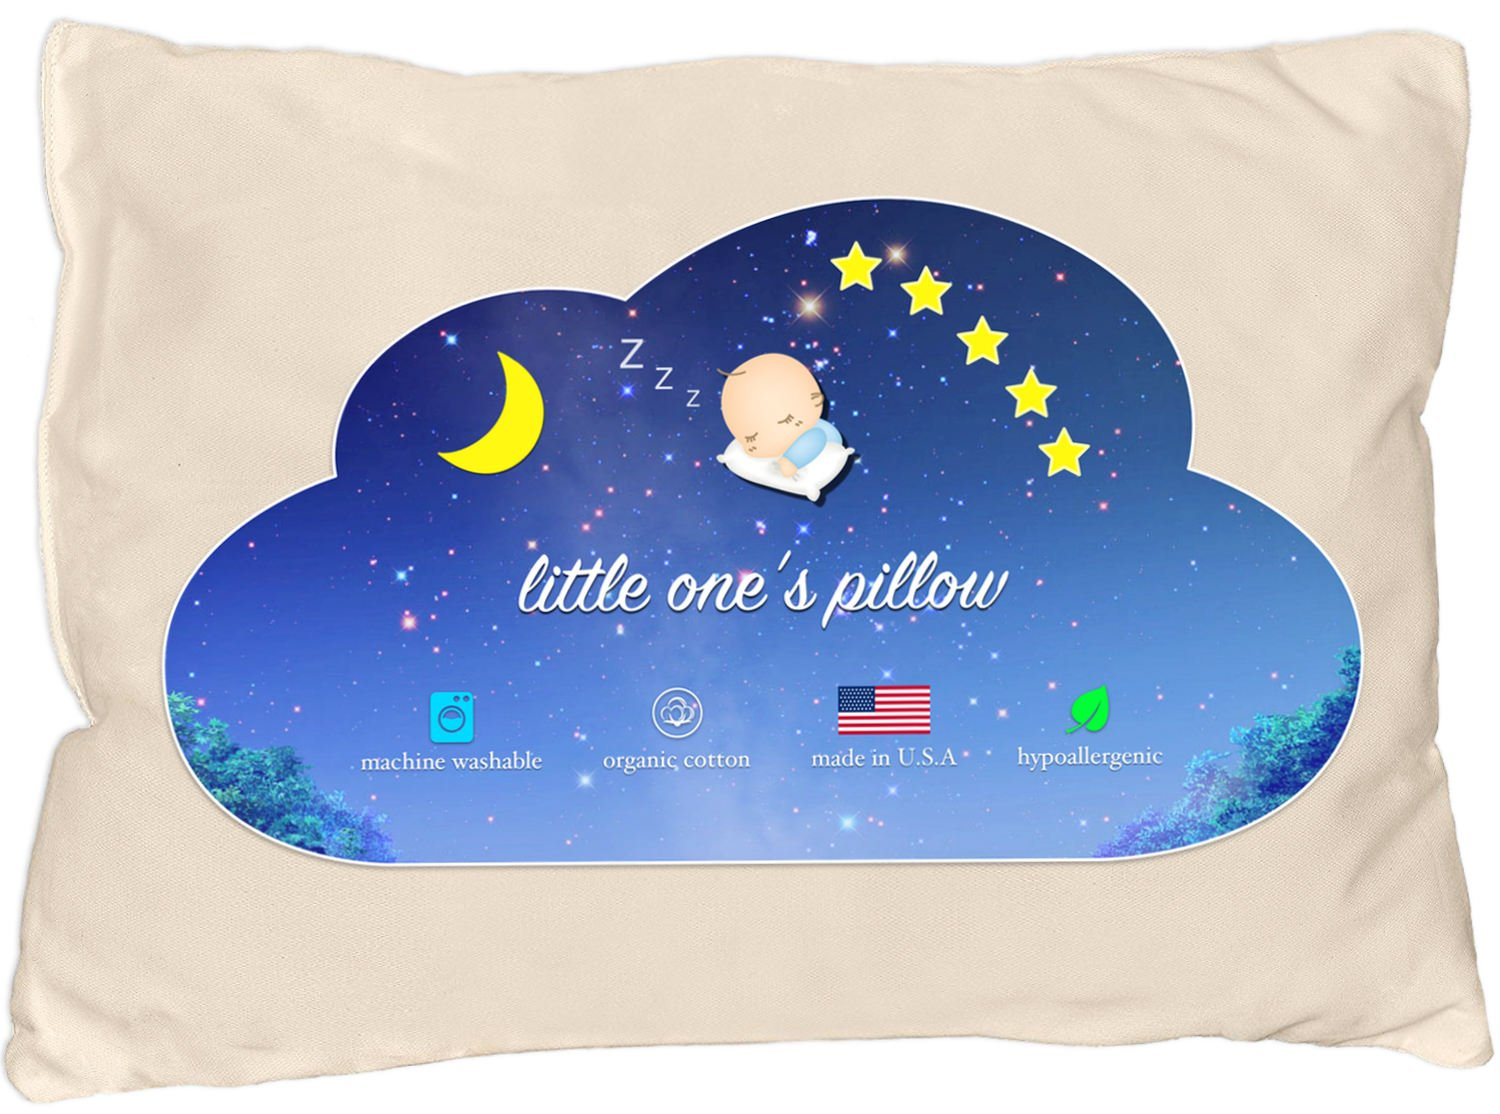 sleeping at find cheap deals crib best baby pillow get guides with toddler angel quotations hypoallergenic line shopping support on neck for